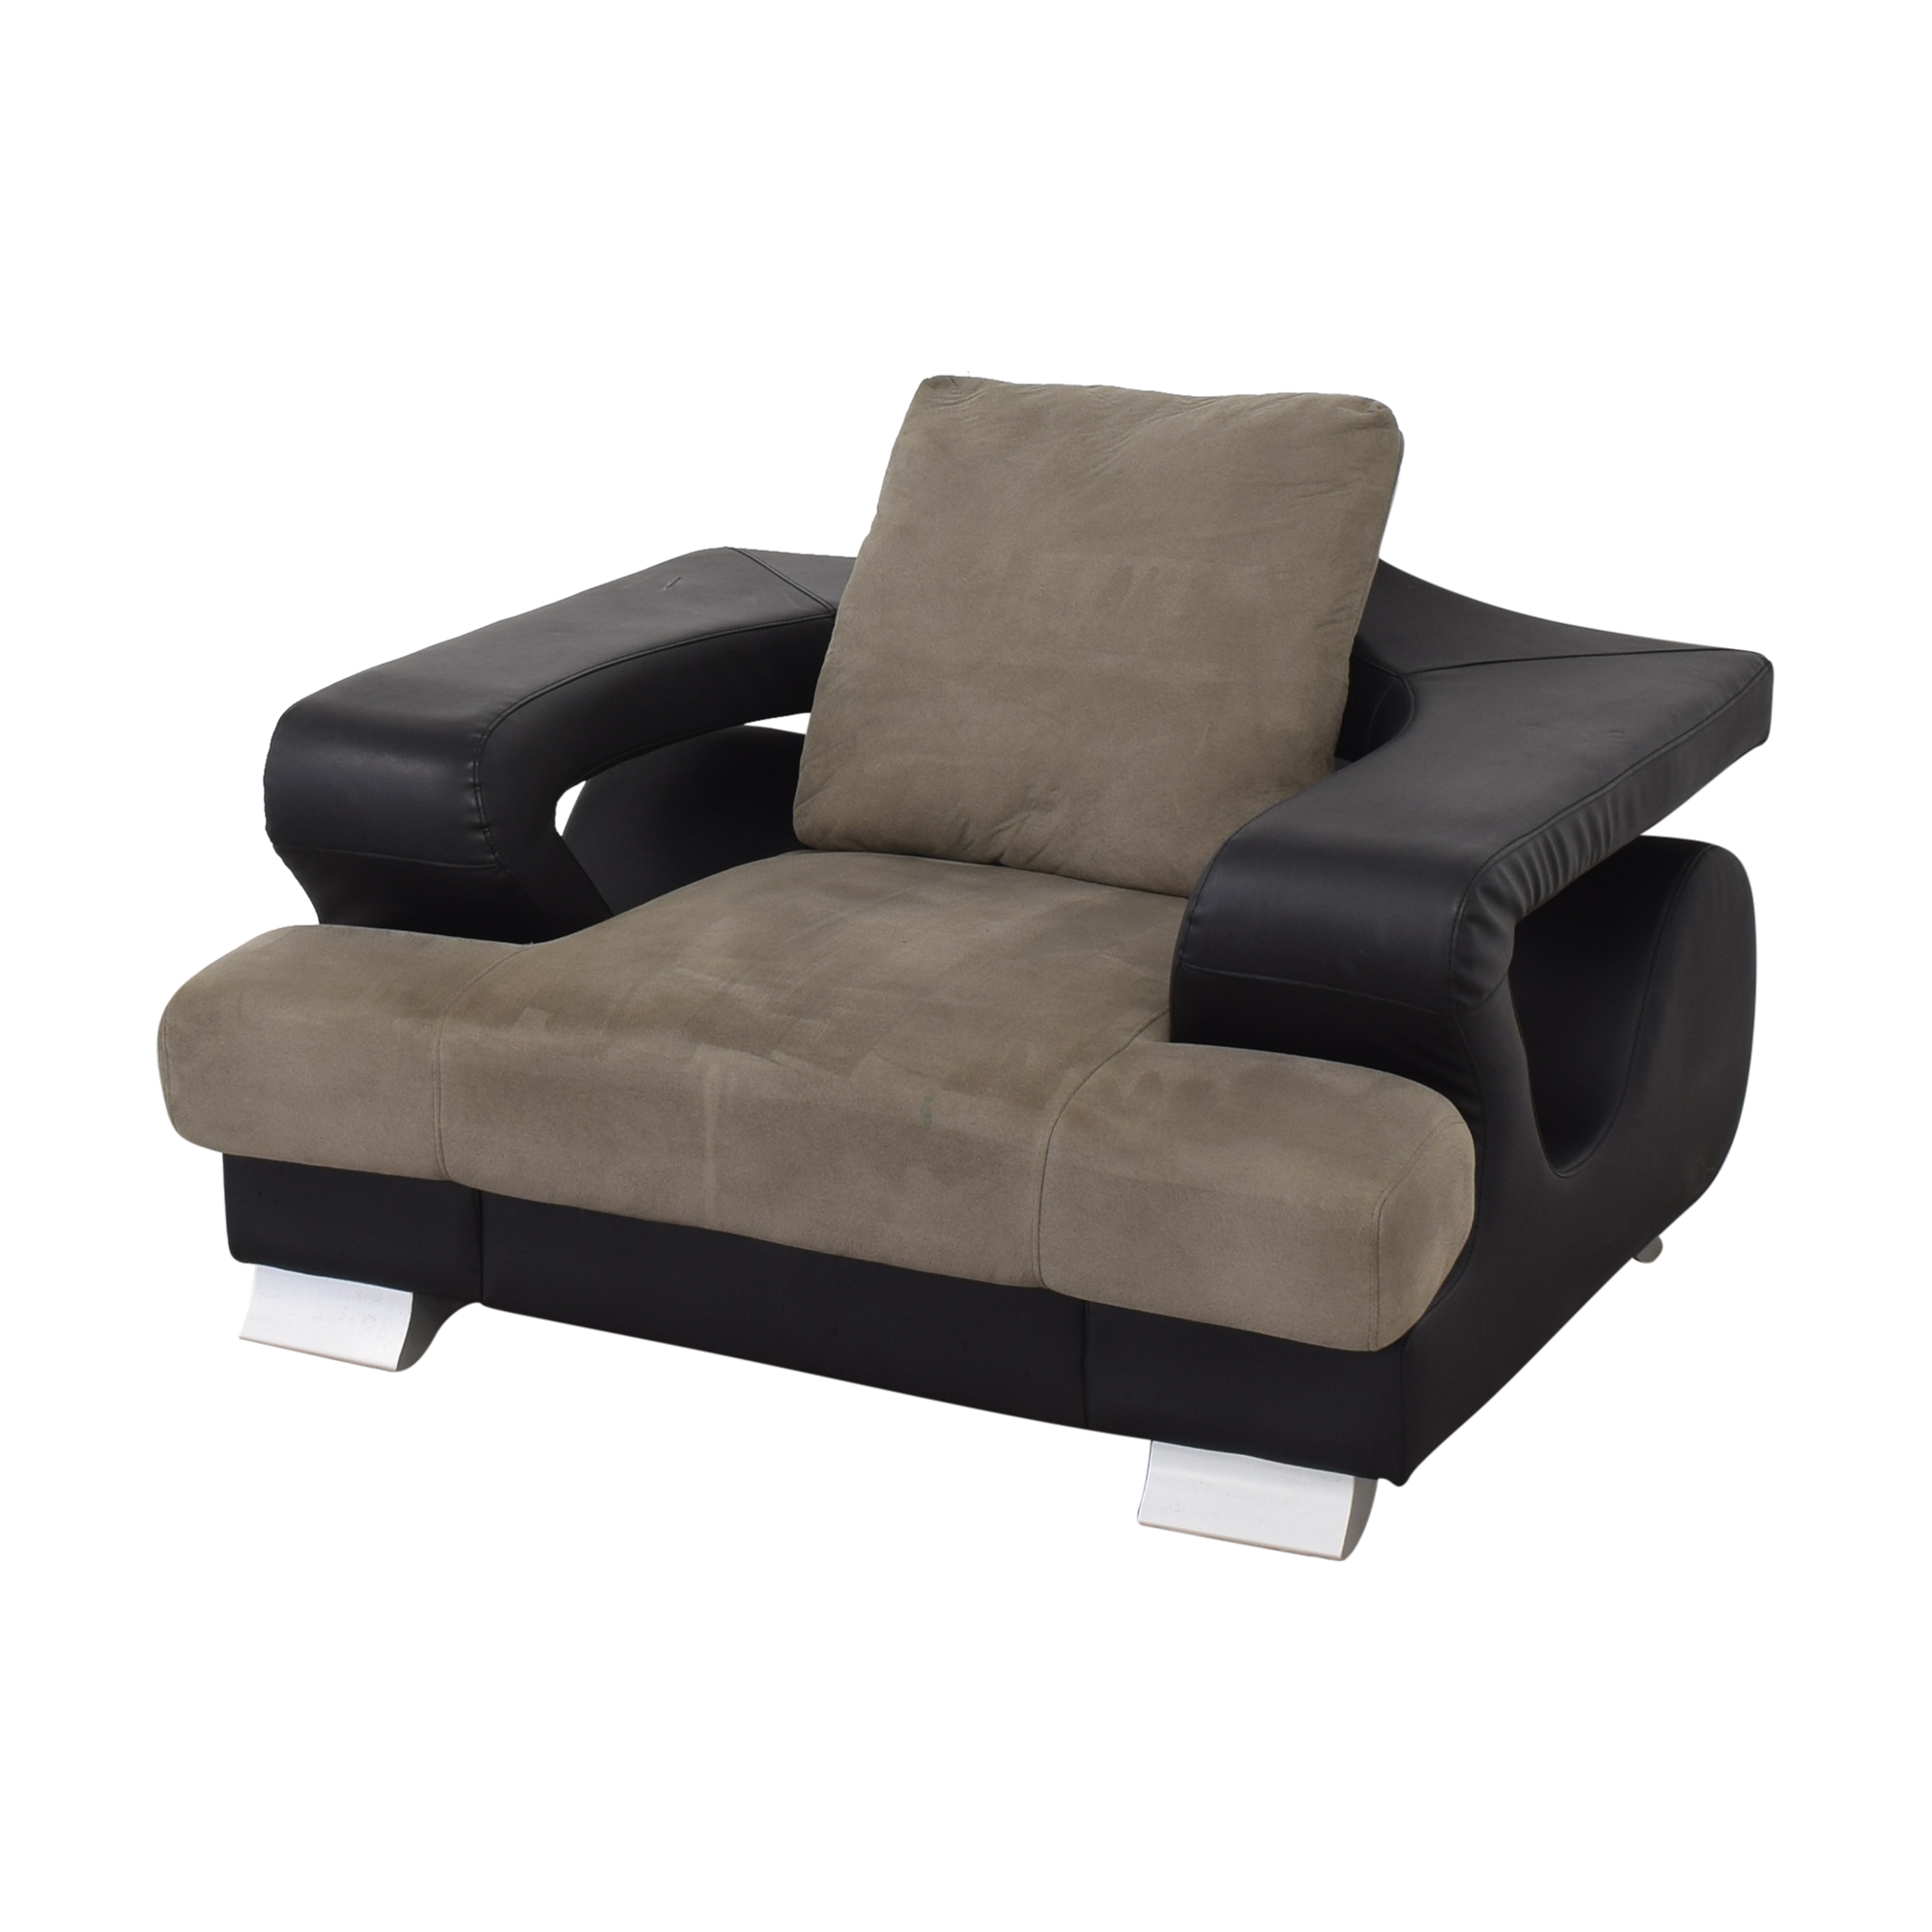 Acme Modern Style Lounge Chair / Accent Chairs